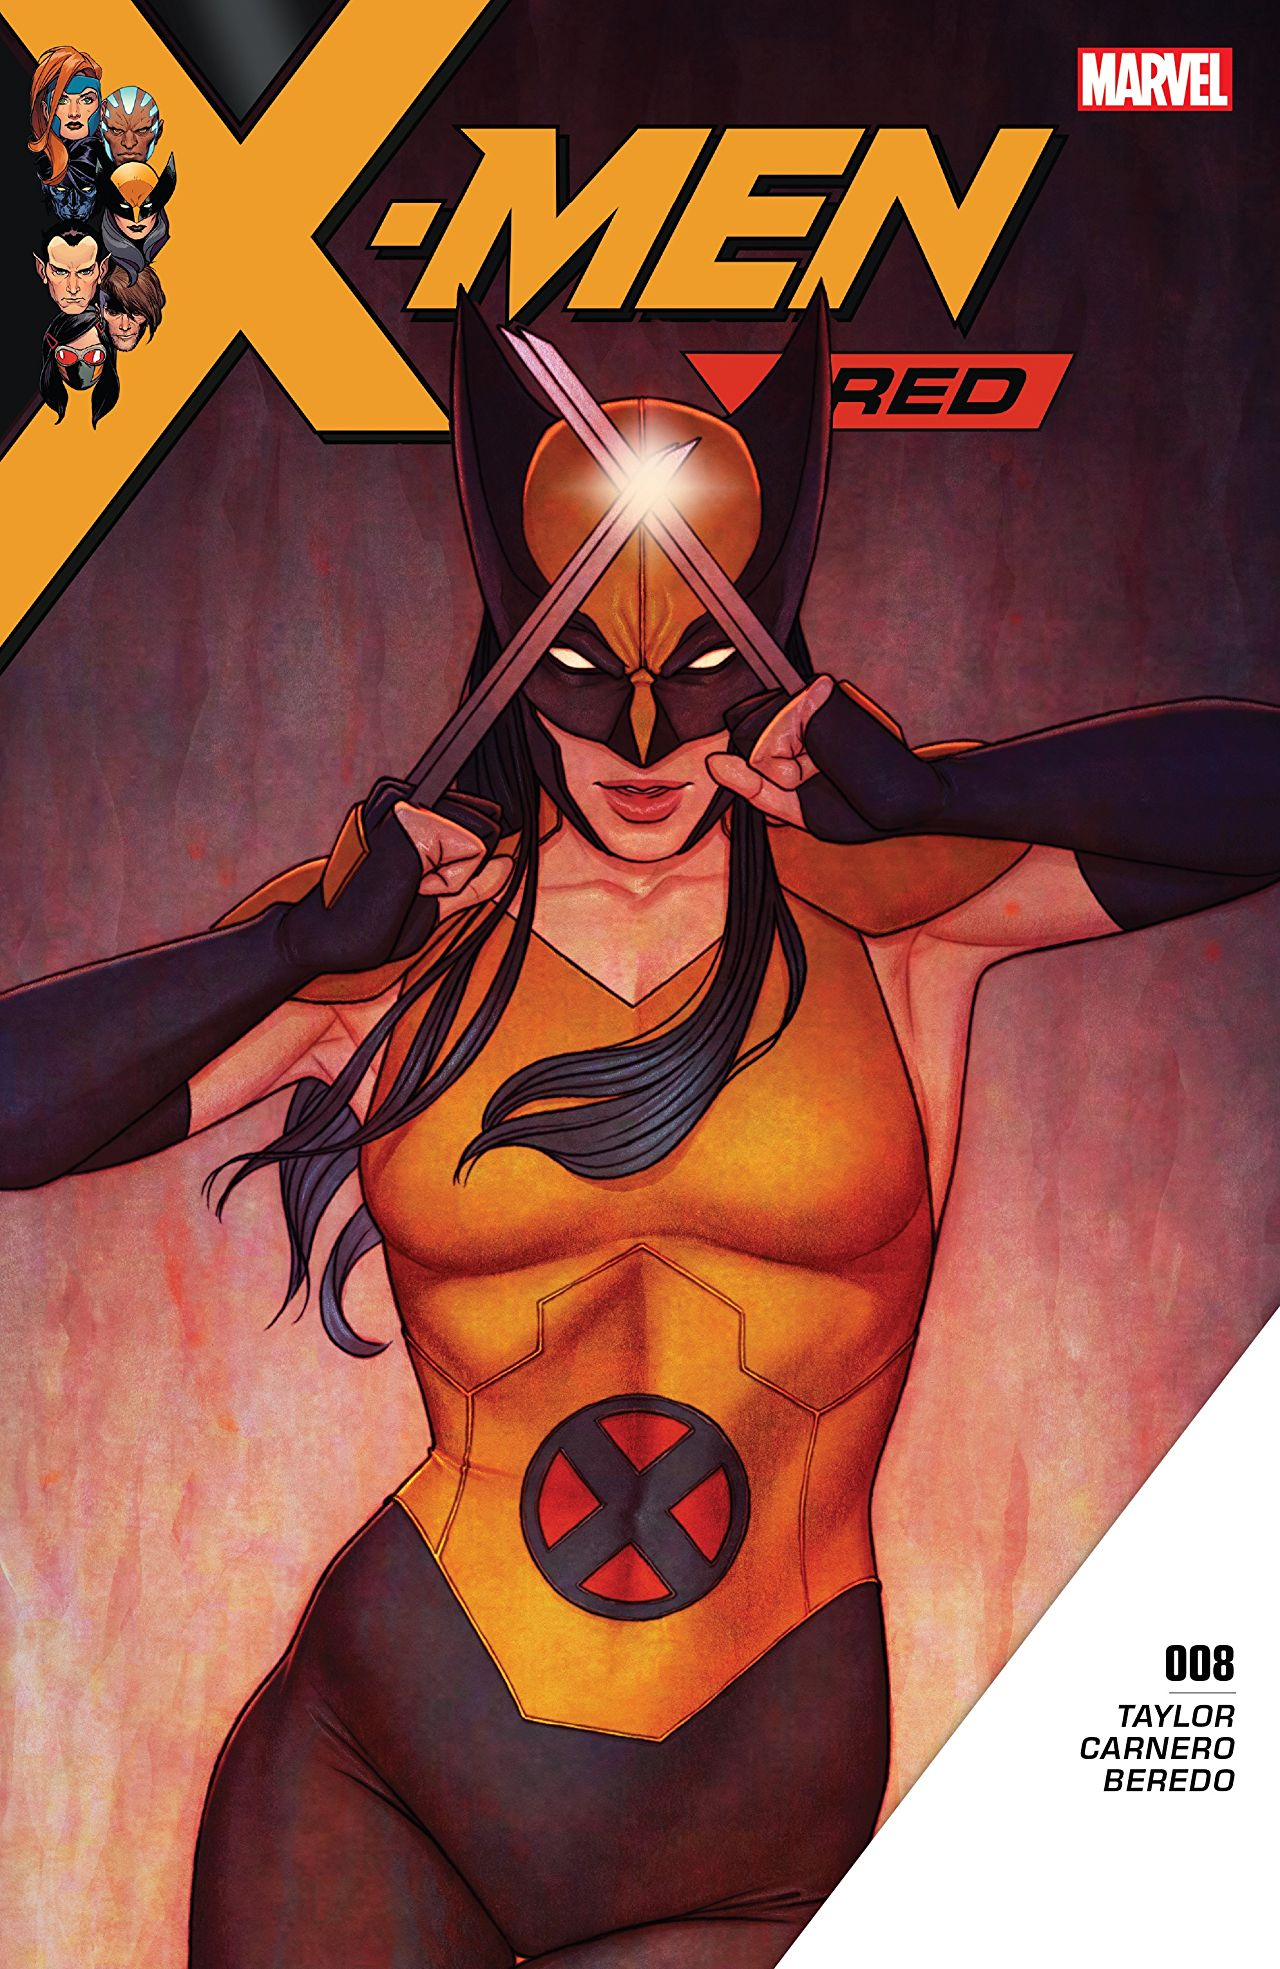 X-Men Red #8 review: Falling short of its potential